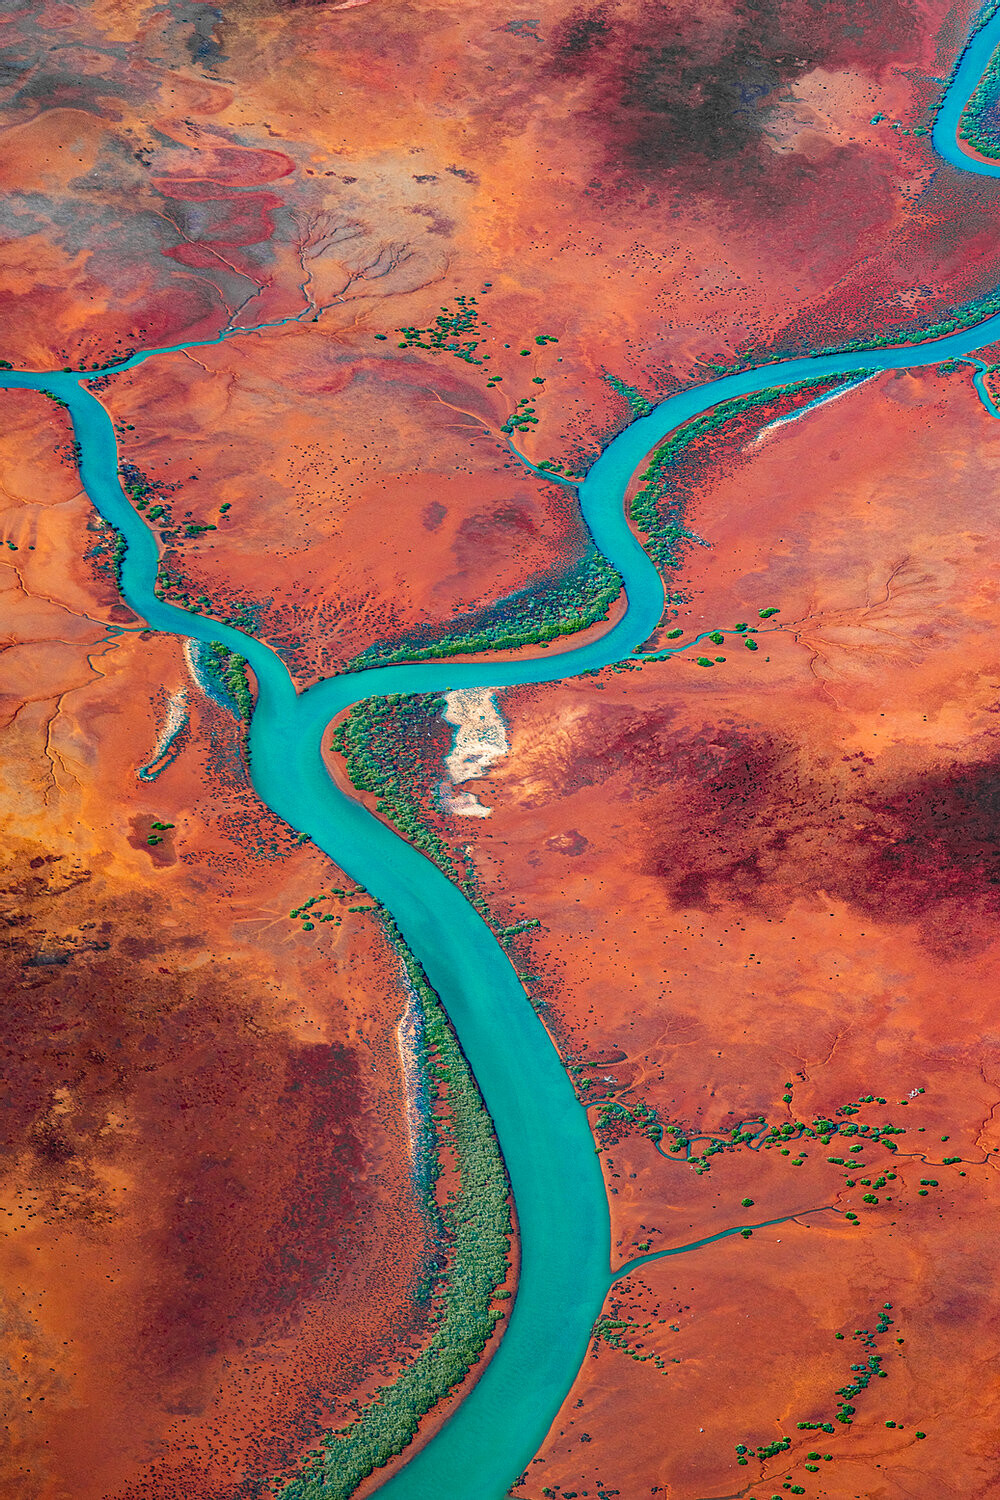 Aerial photo of river across red dirt